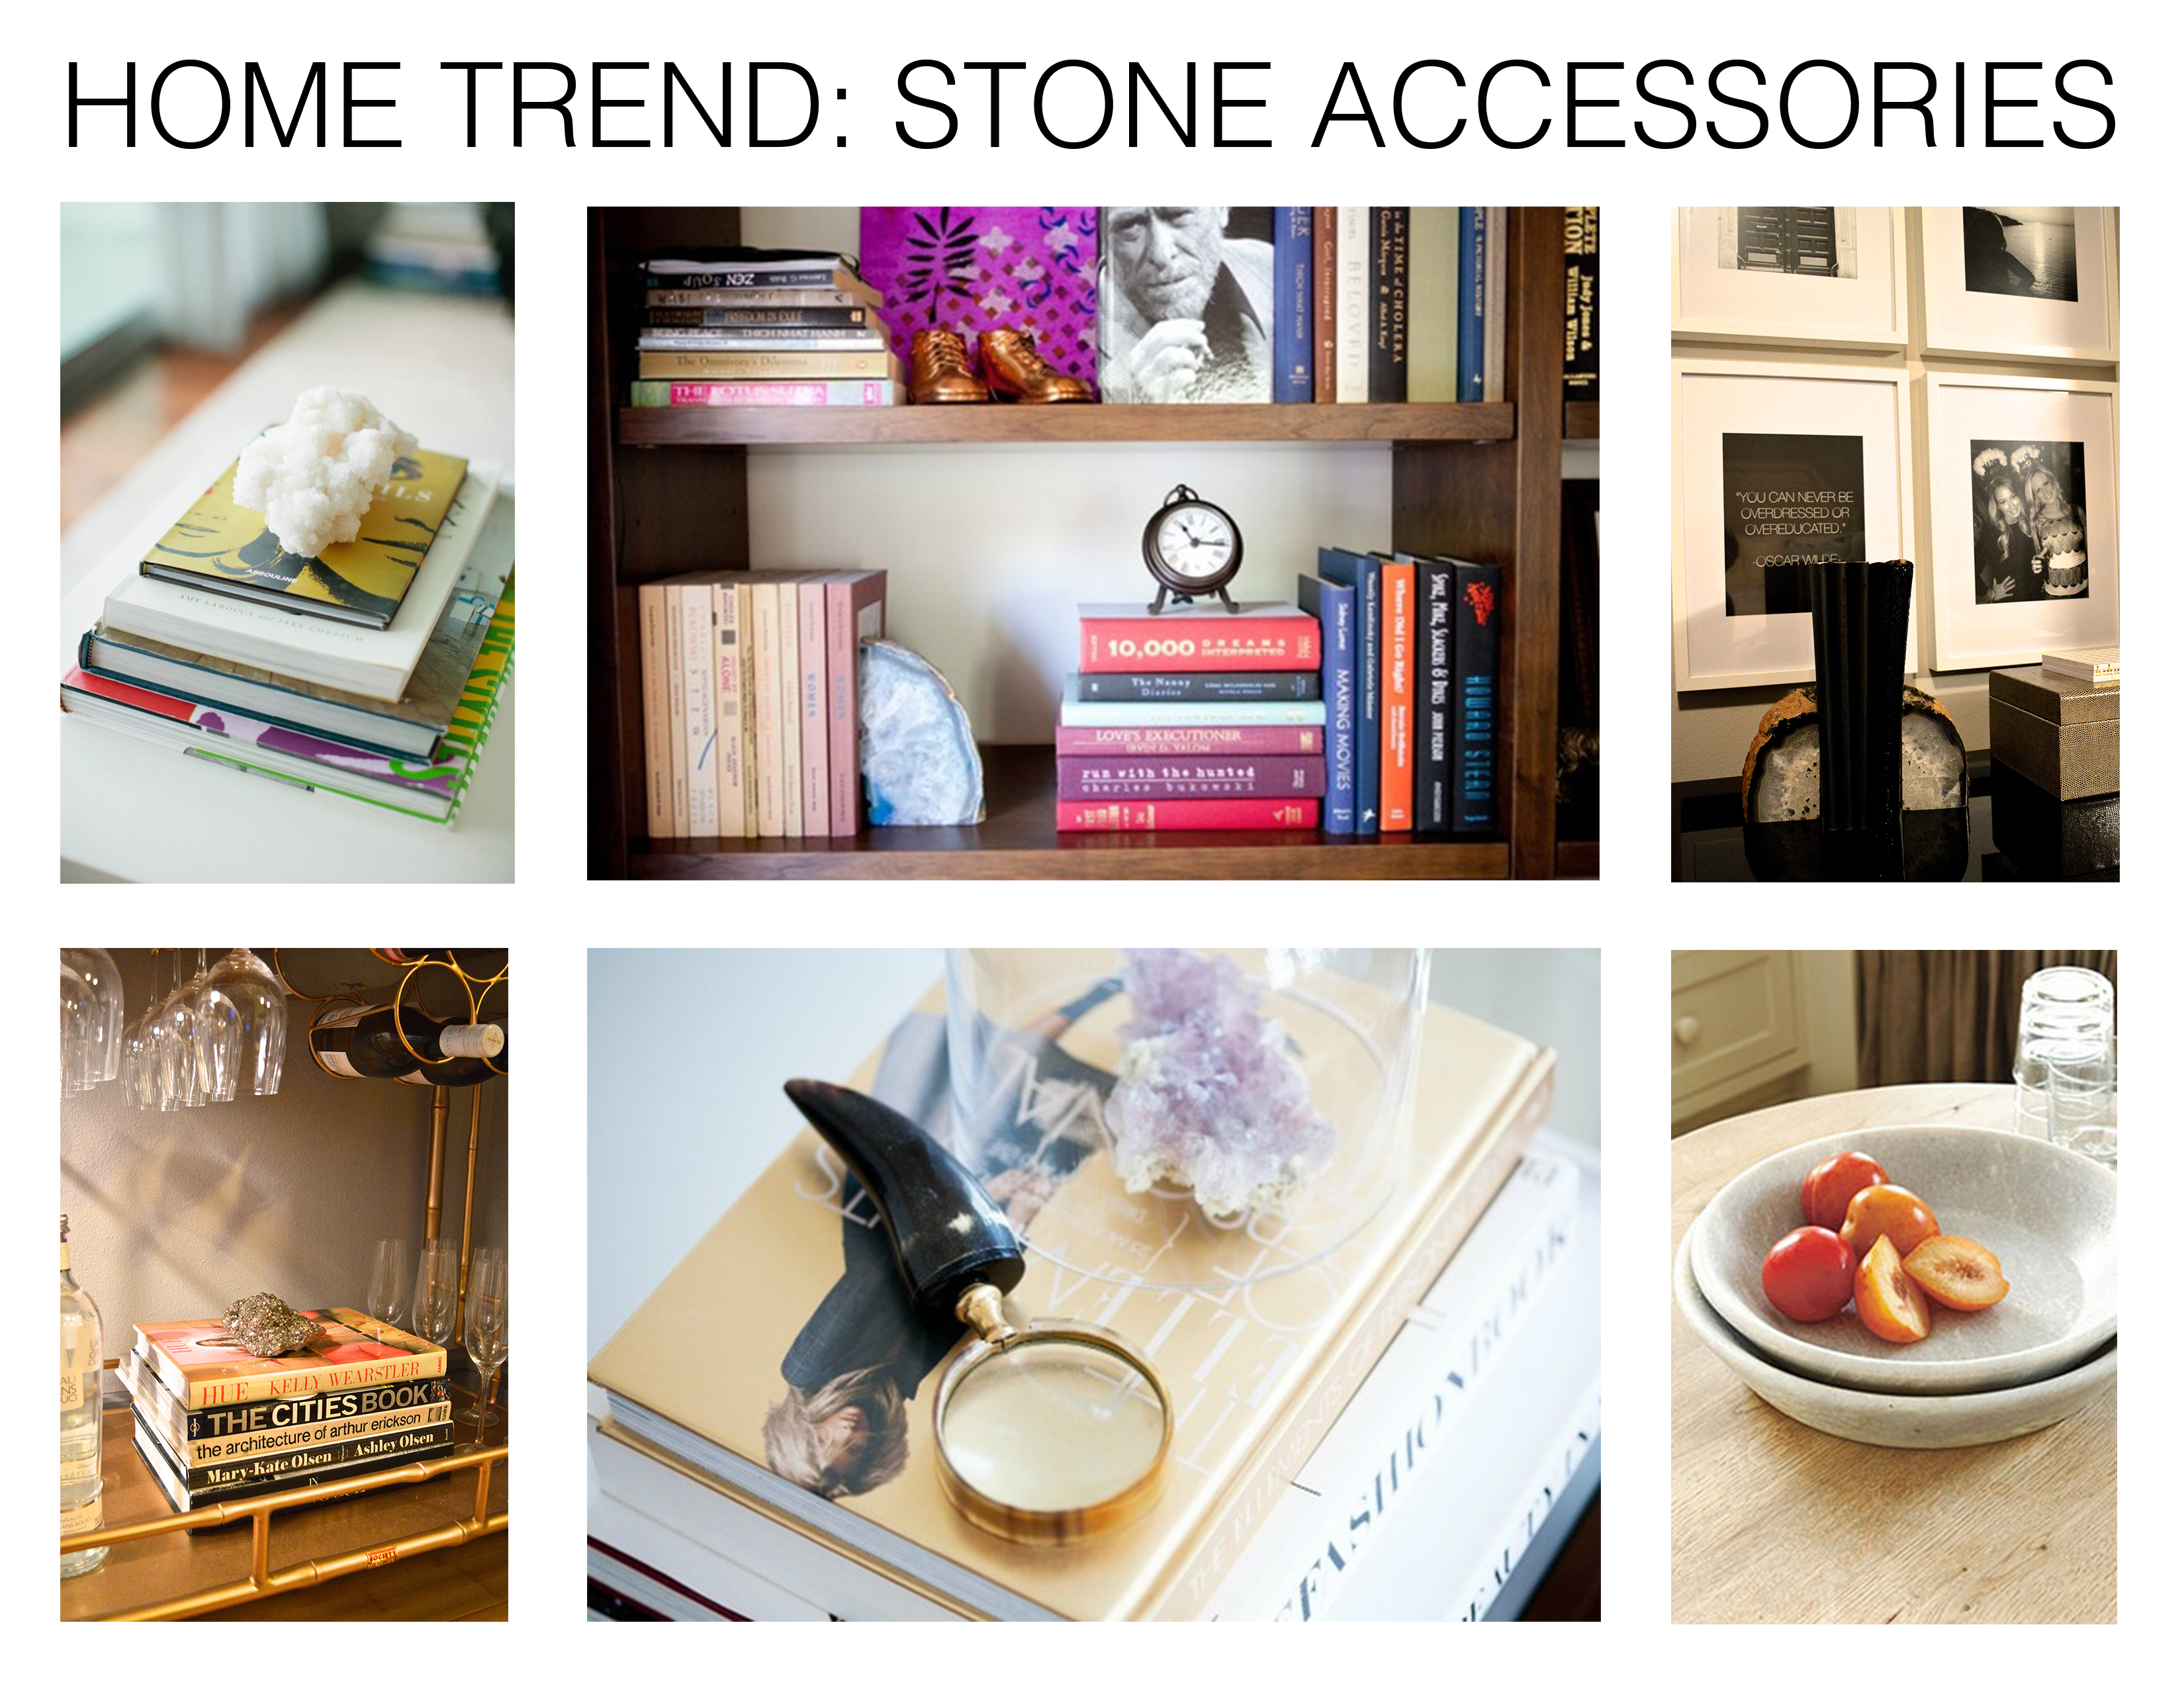 Mhd Hometrend Stone Accessories Inspiration